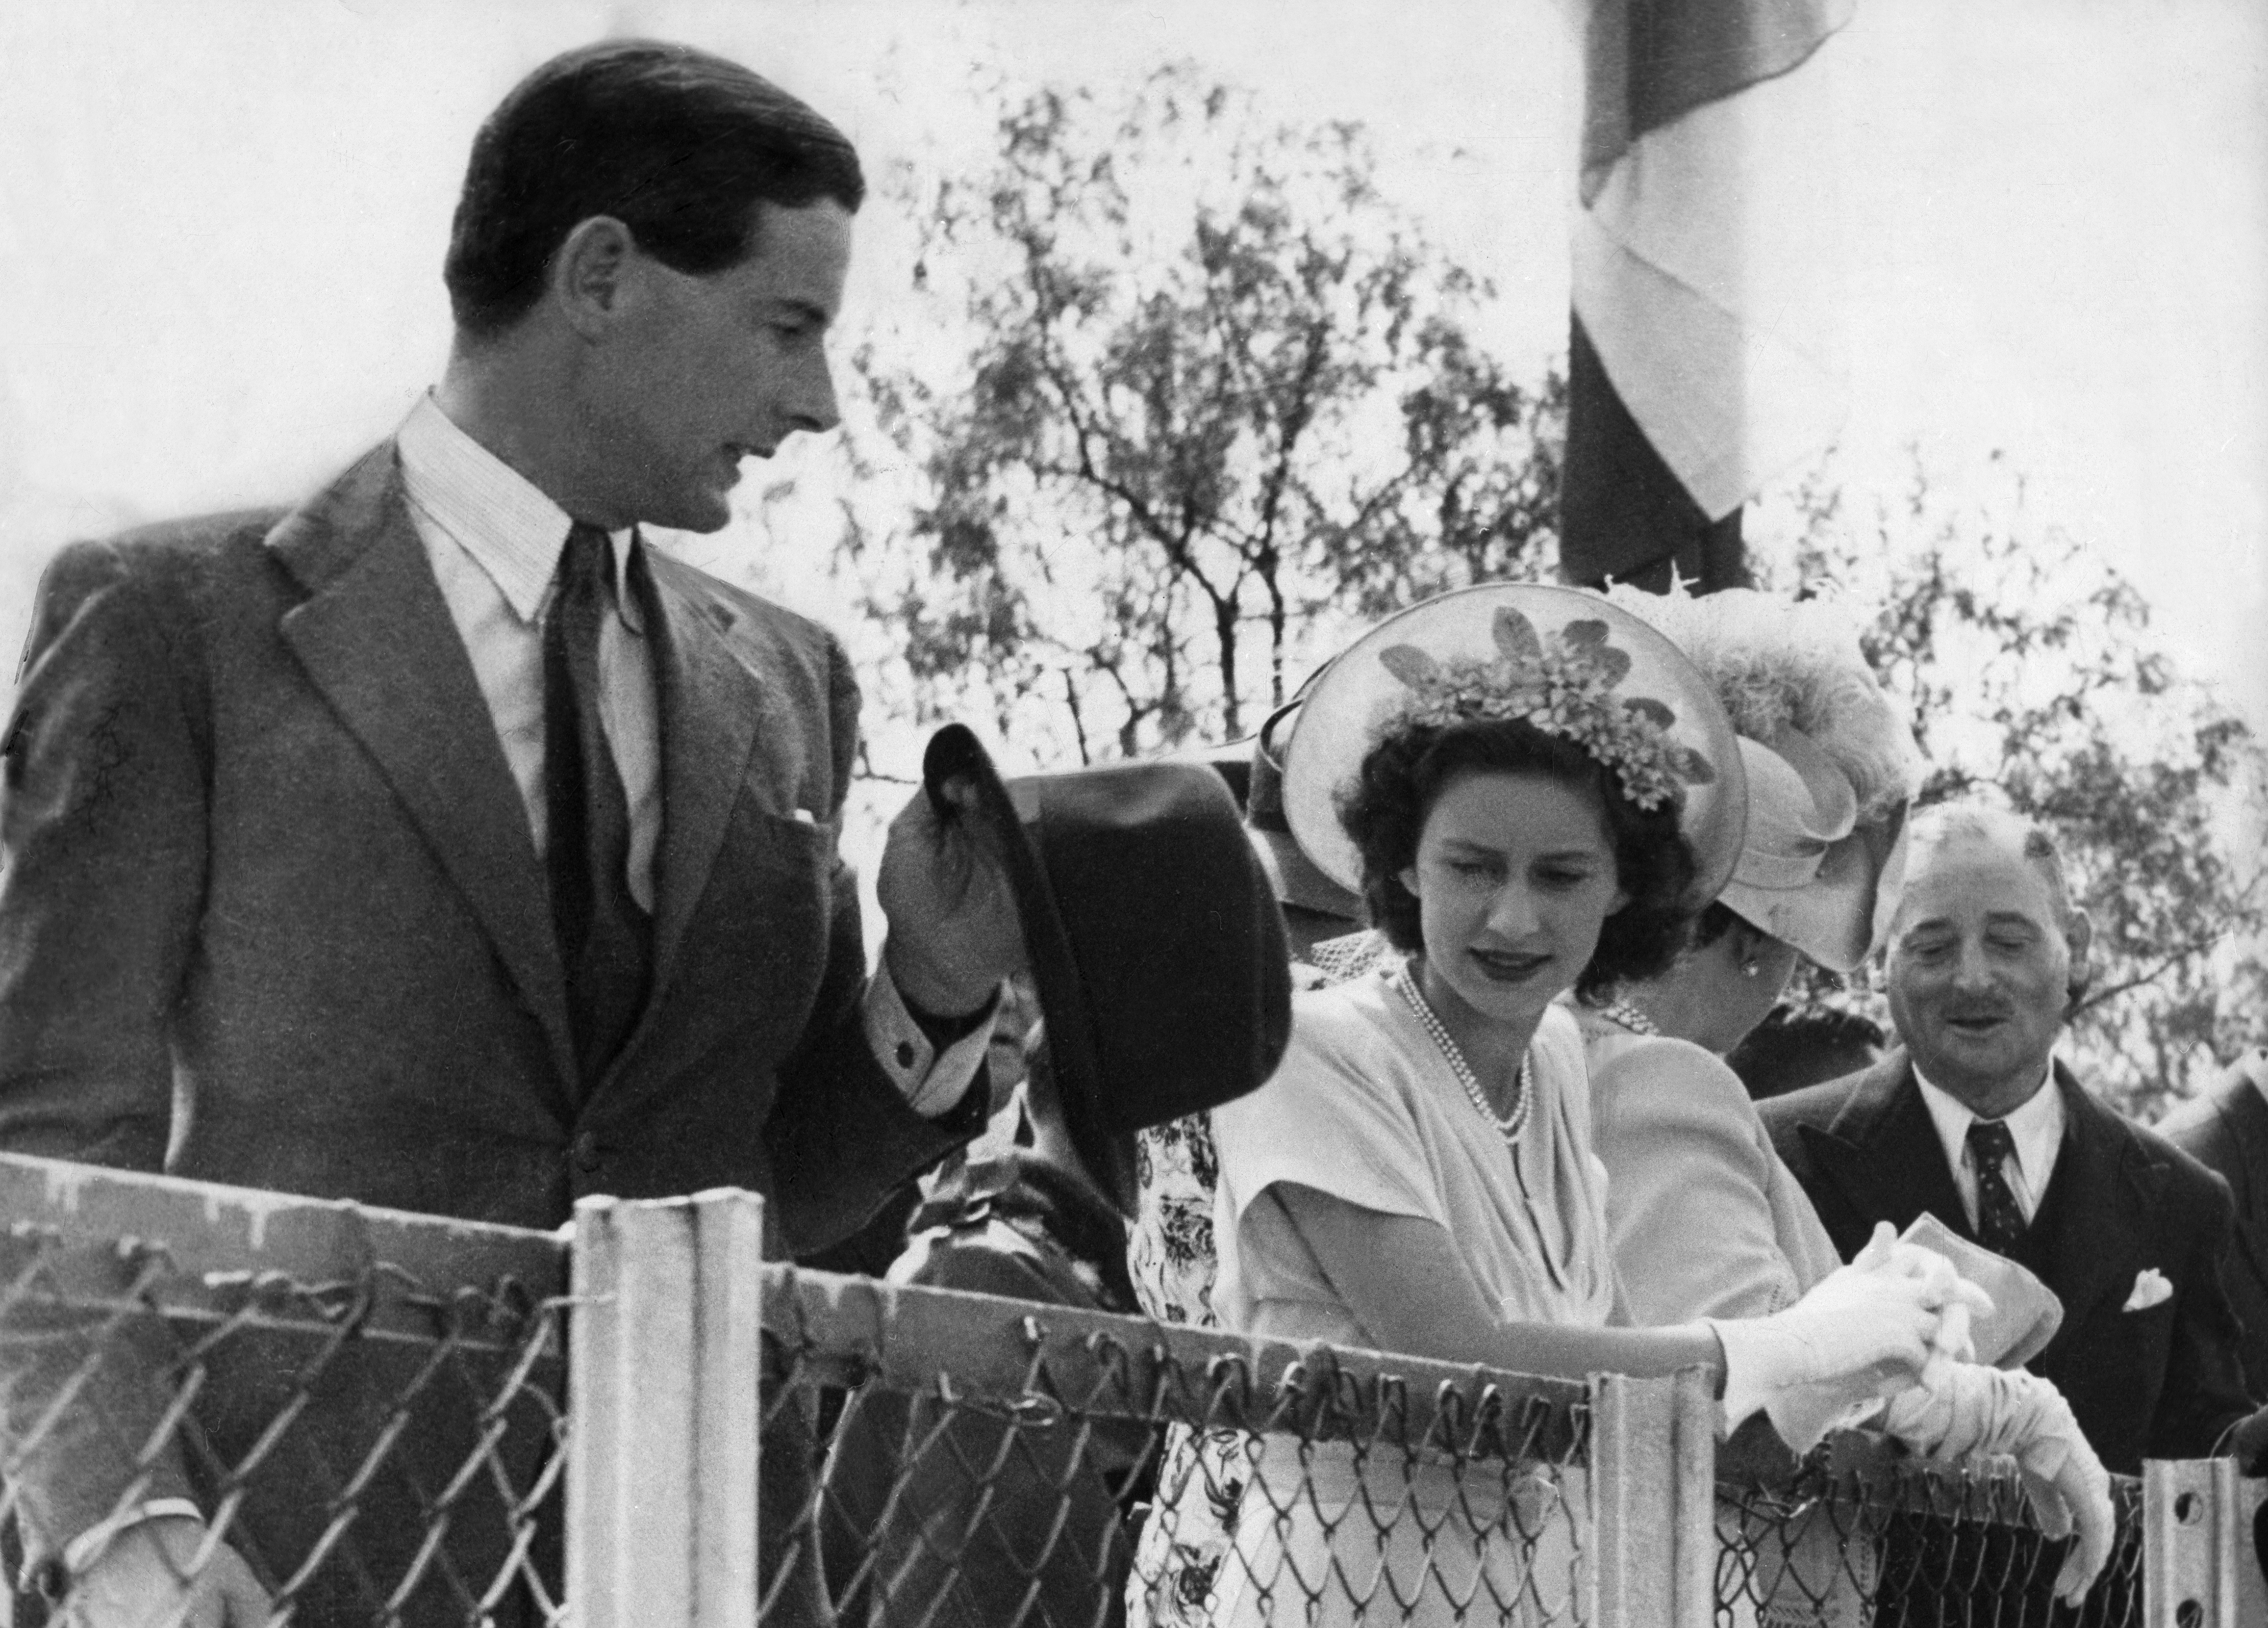 Princess Margaret with Group Captain Peter Townsend in South Africa during the Royal Tour, in 1947.